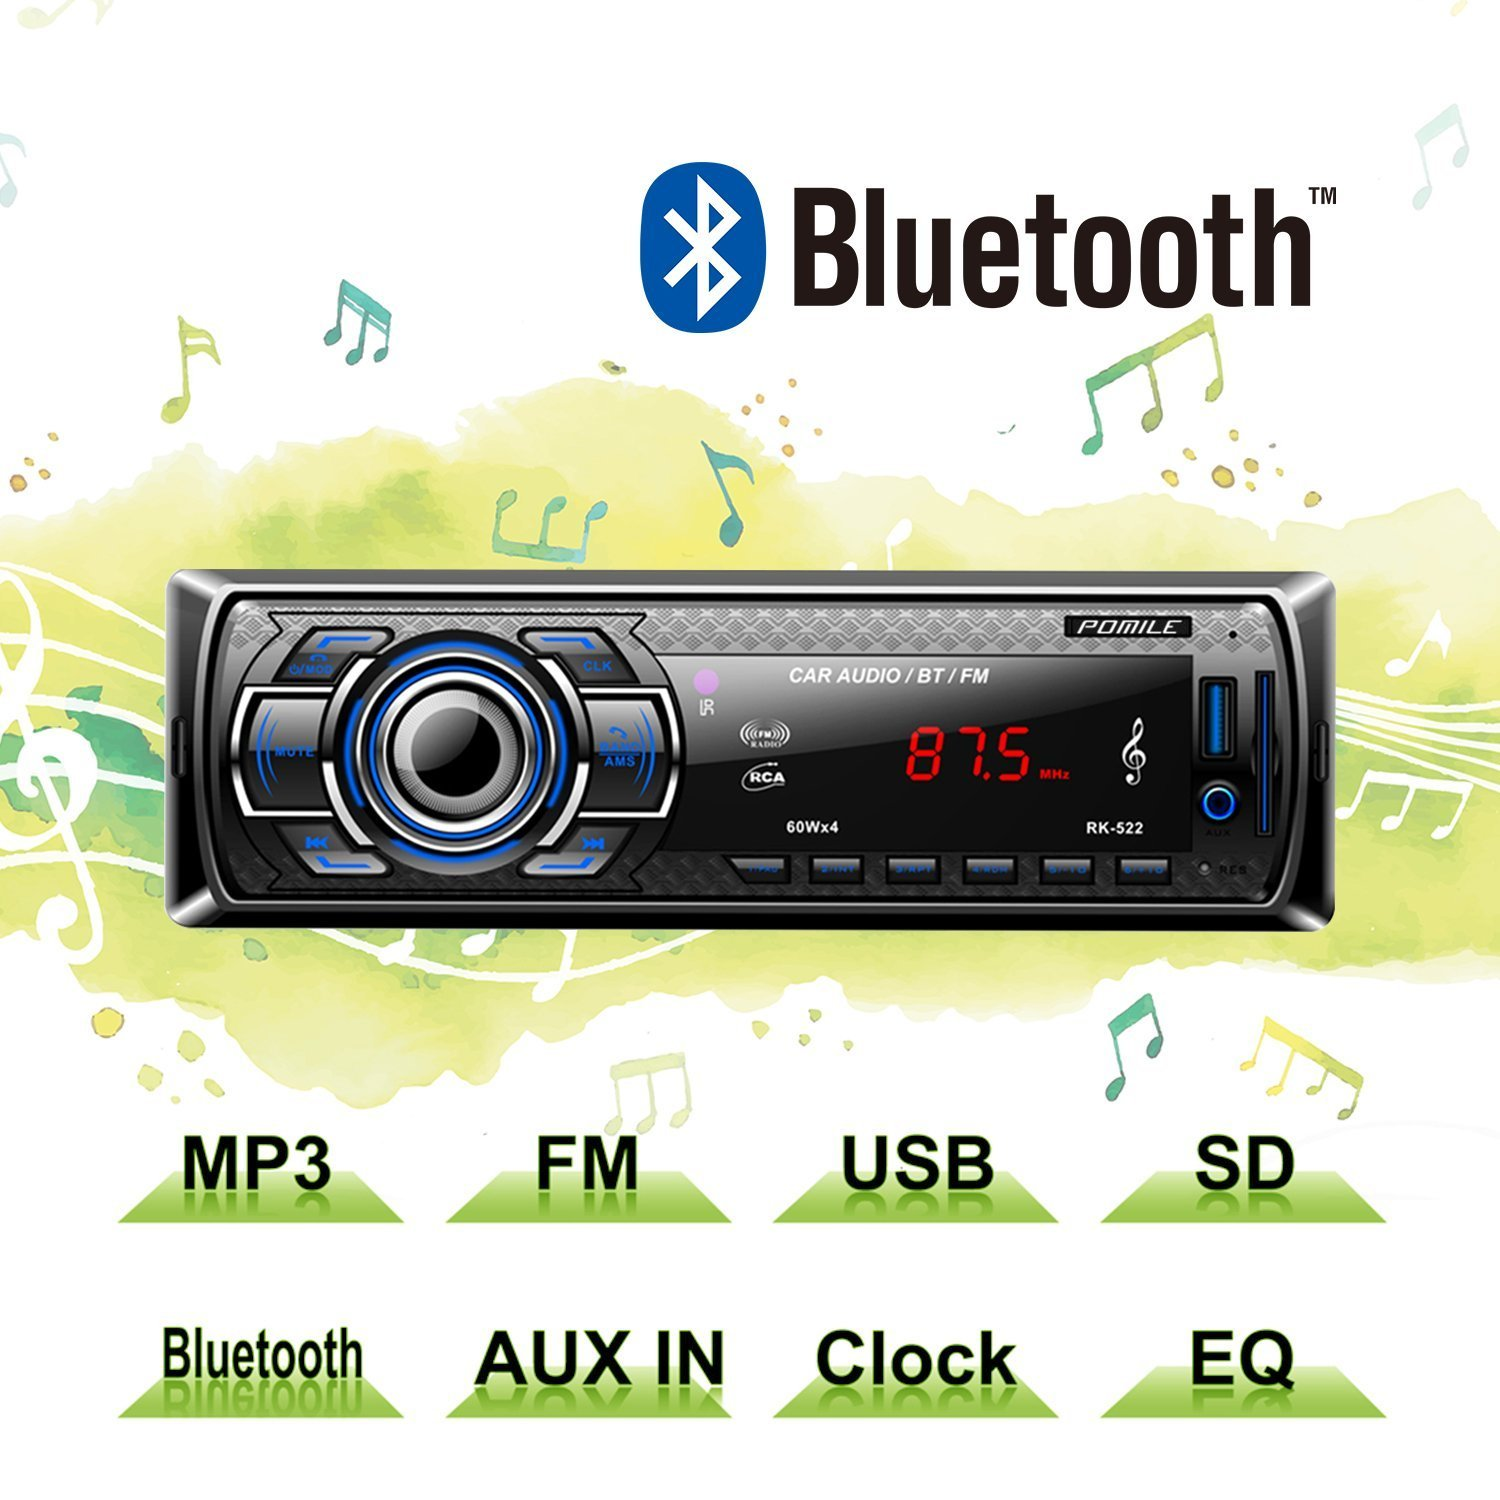 POMILE Car Stereo Audio Receiver Bluetooth, Car Radio MP3 Player Single Din In-Dash USB/SD/FM/AUX/MMC with Remote Control 12V, (No CD/DVD)